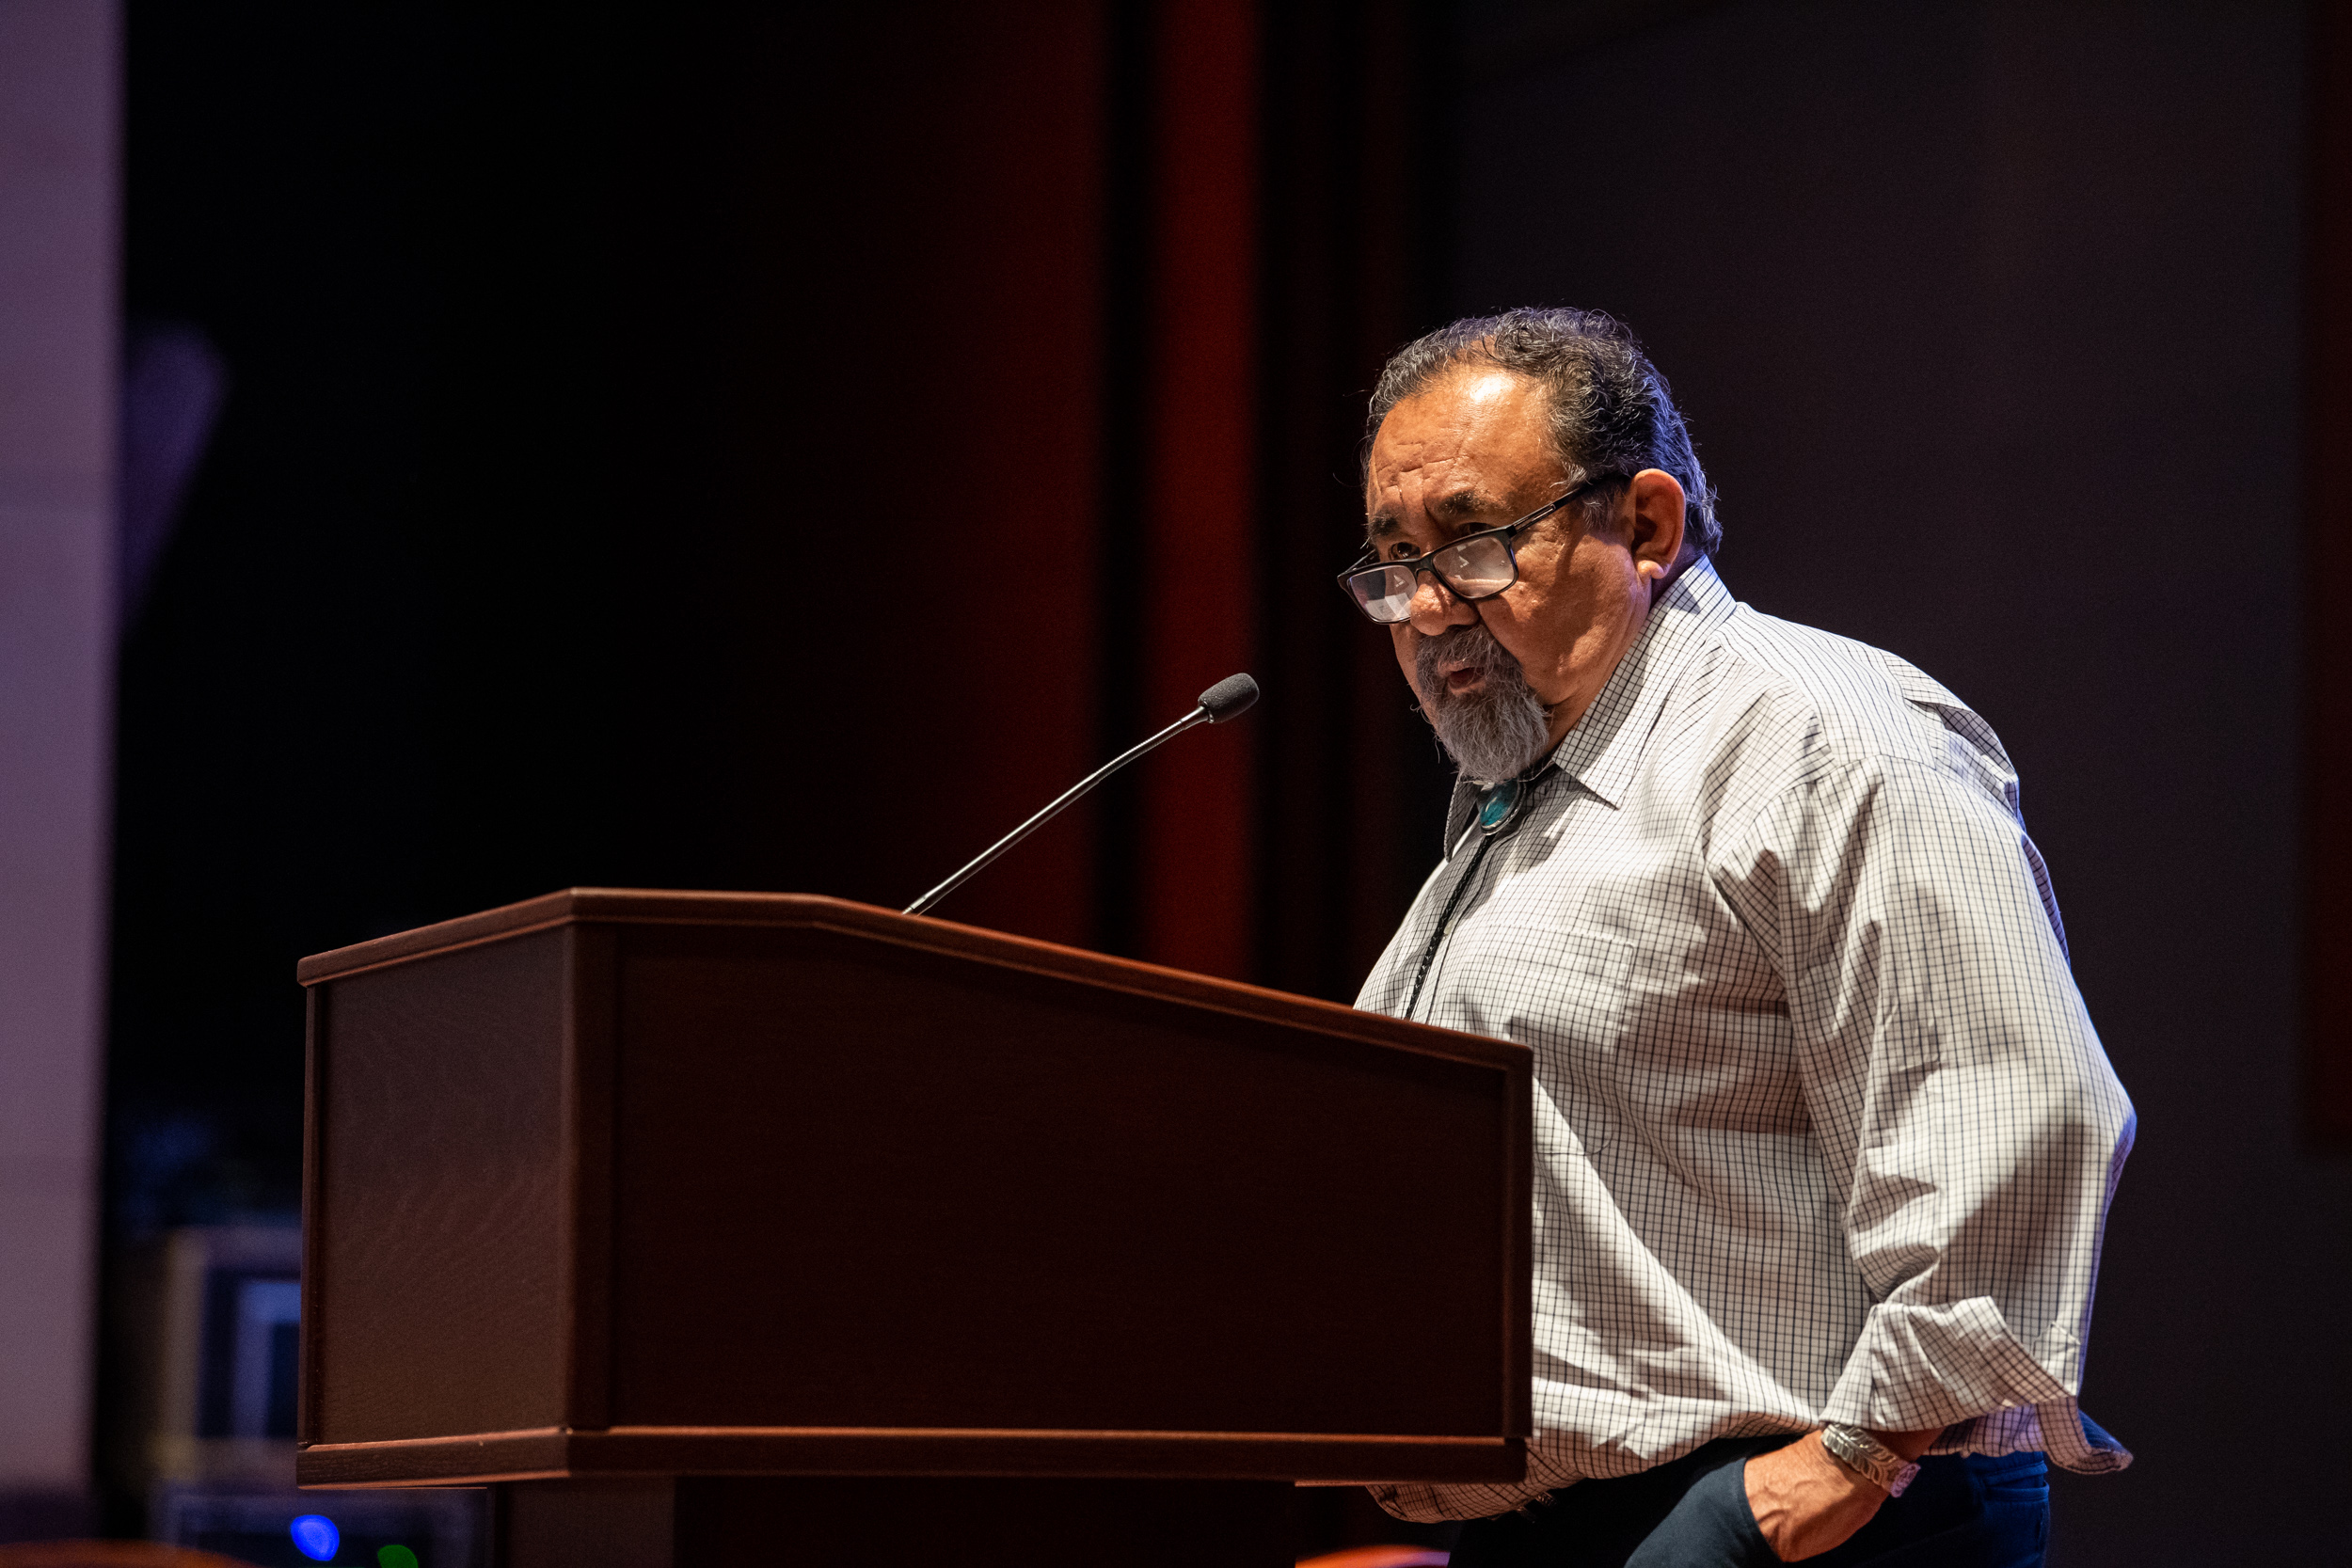 Chair Raul M. Grijalva addresses community leaders at the Environmental Justice Convening on June 26, 2019